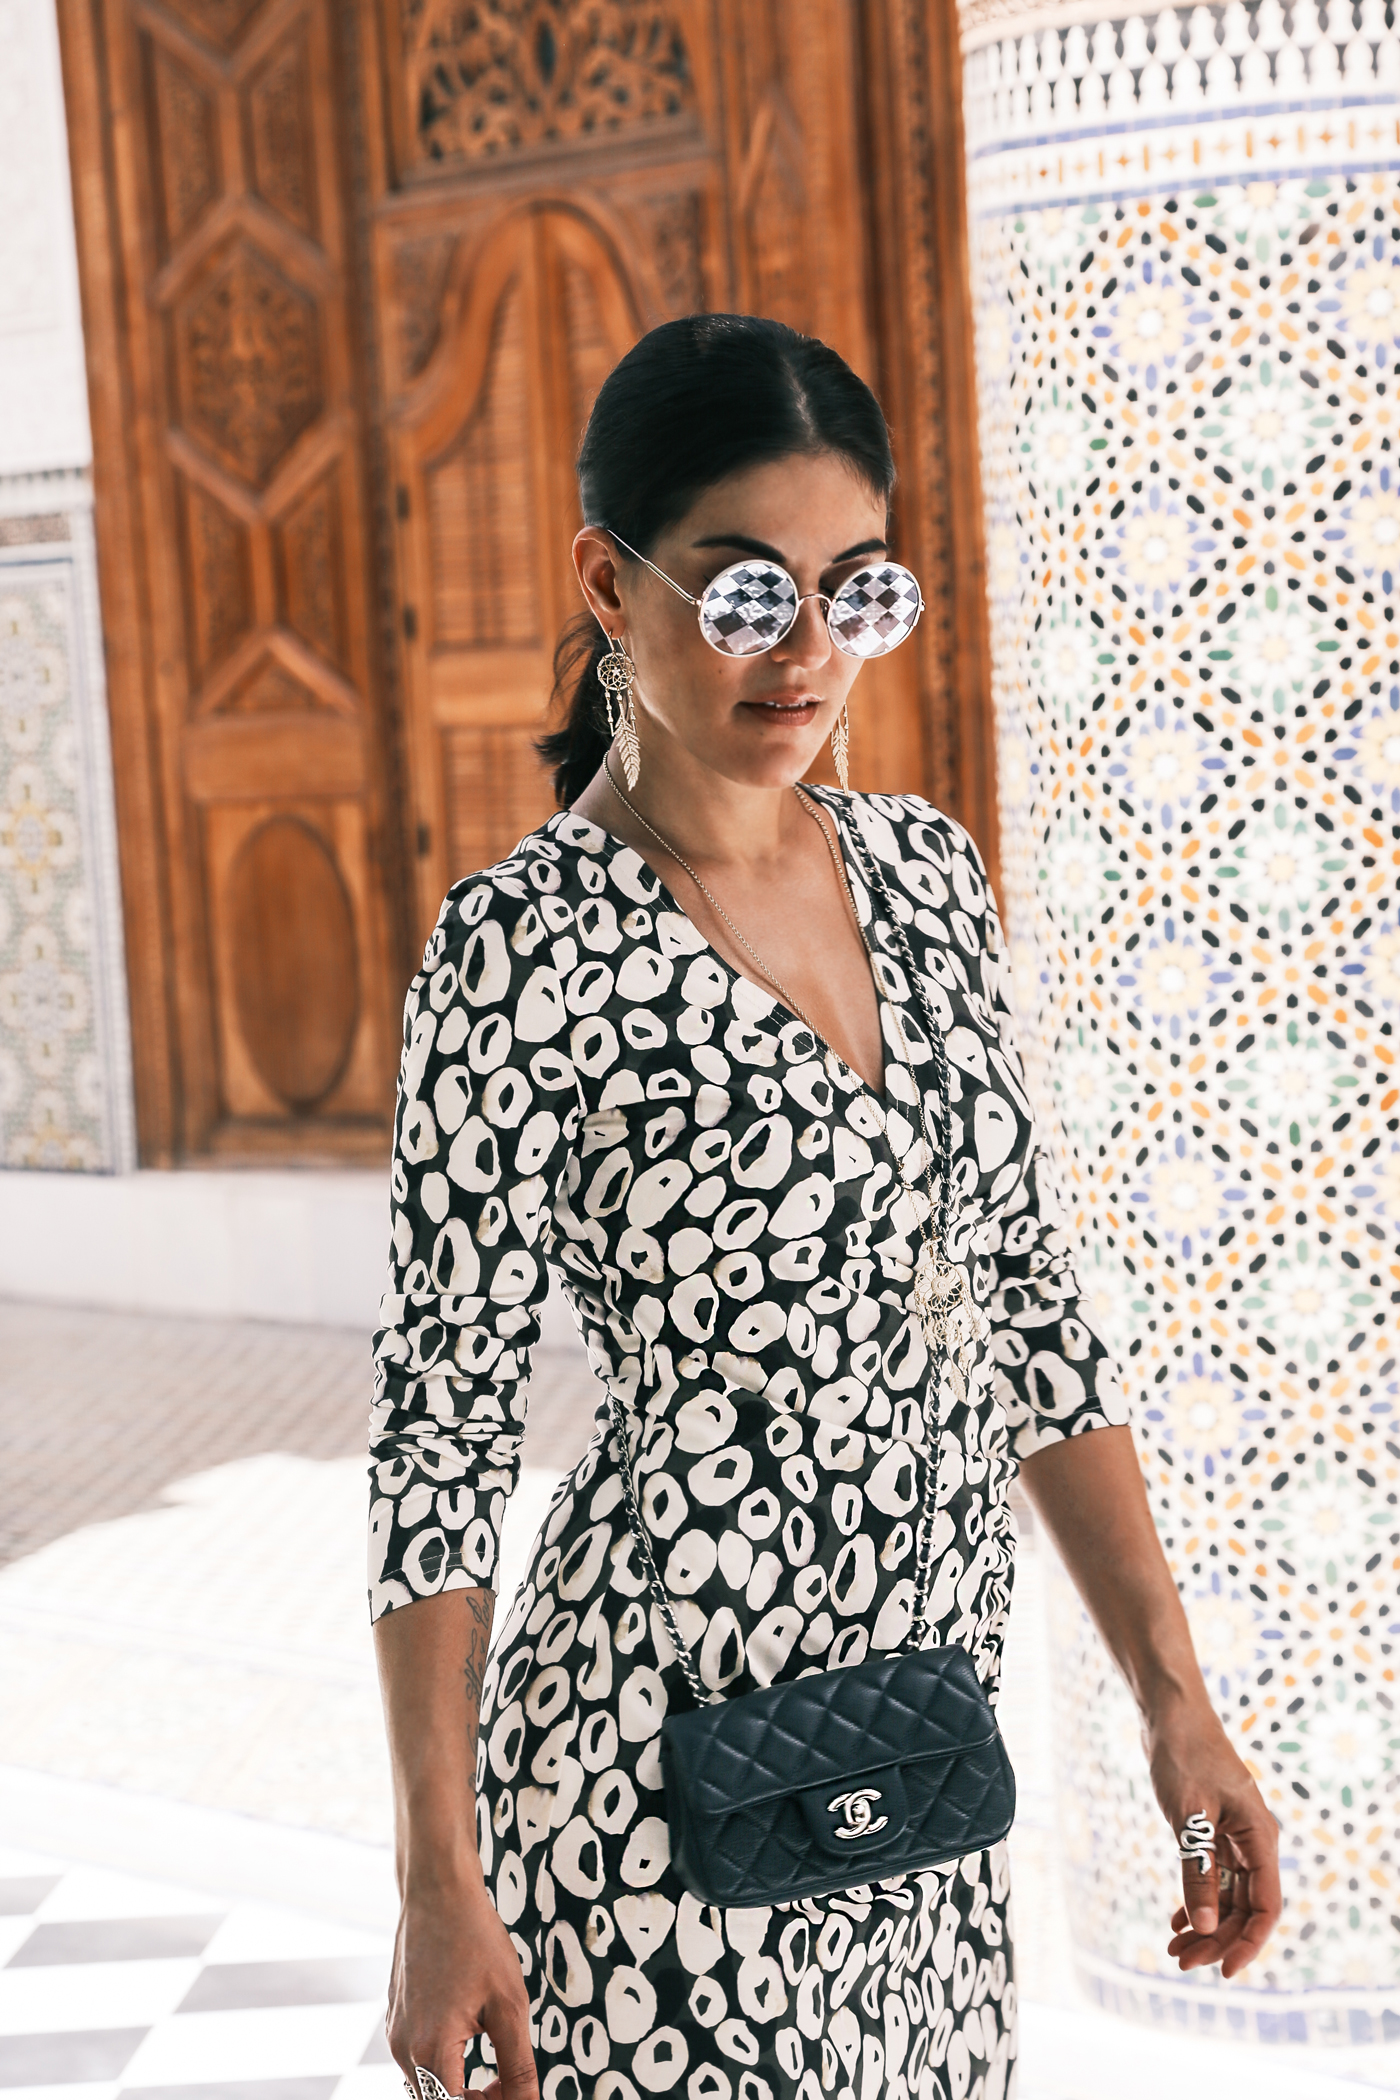 The Leopard Trend 2018